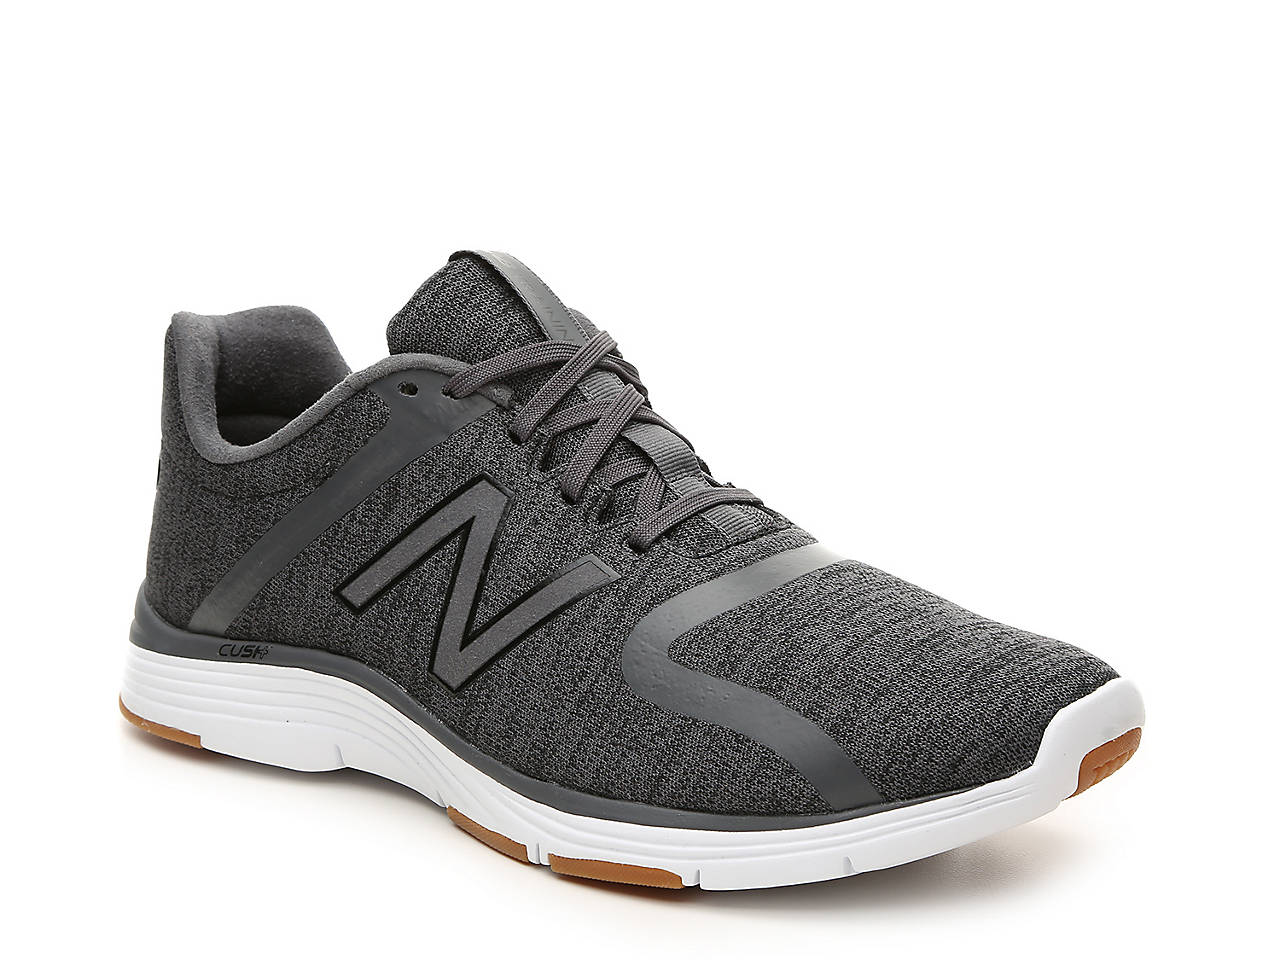 Free Shipping Pay With Visa Popular Cheap Online New Balance 818 V3 Athletic Sneaker Outlet Real KIGkNw